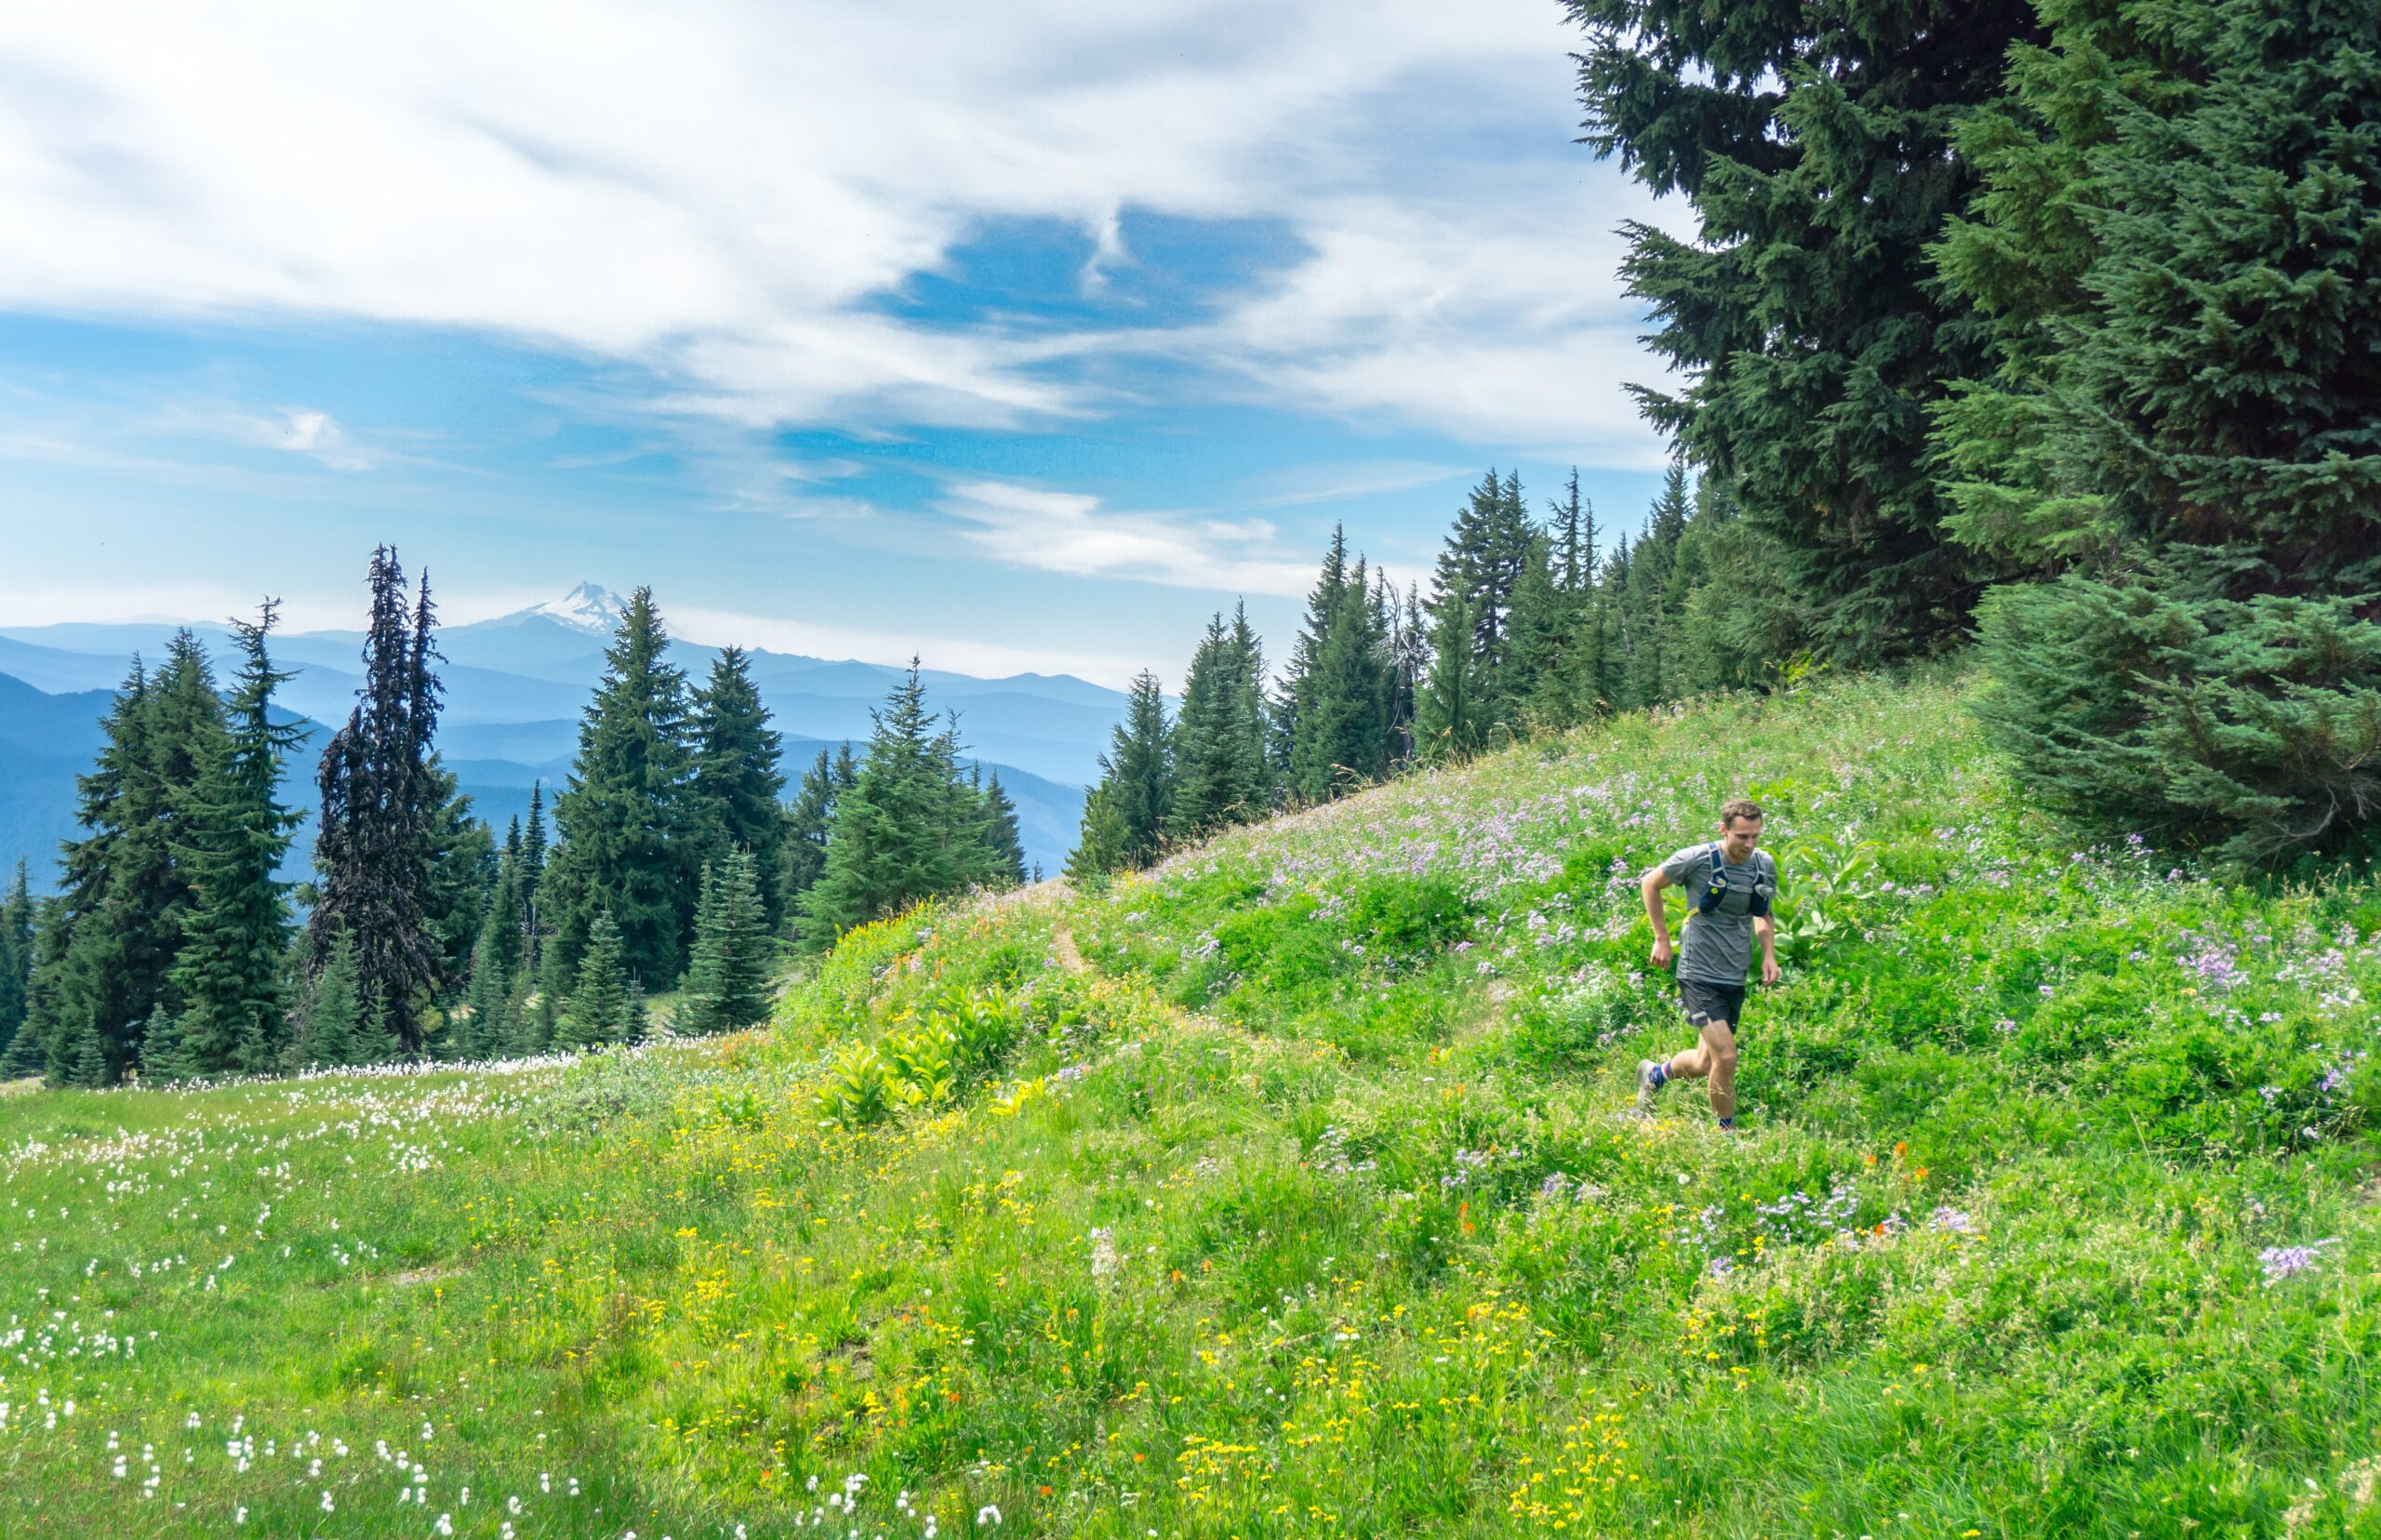 10-best-reasons-to-start-trail-running-with-confidence-trail-run-in-nature